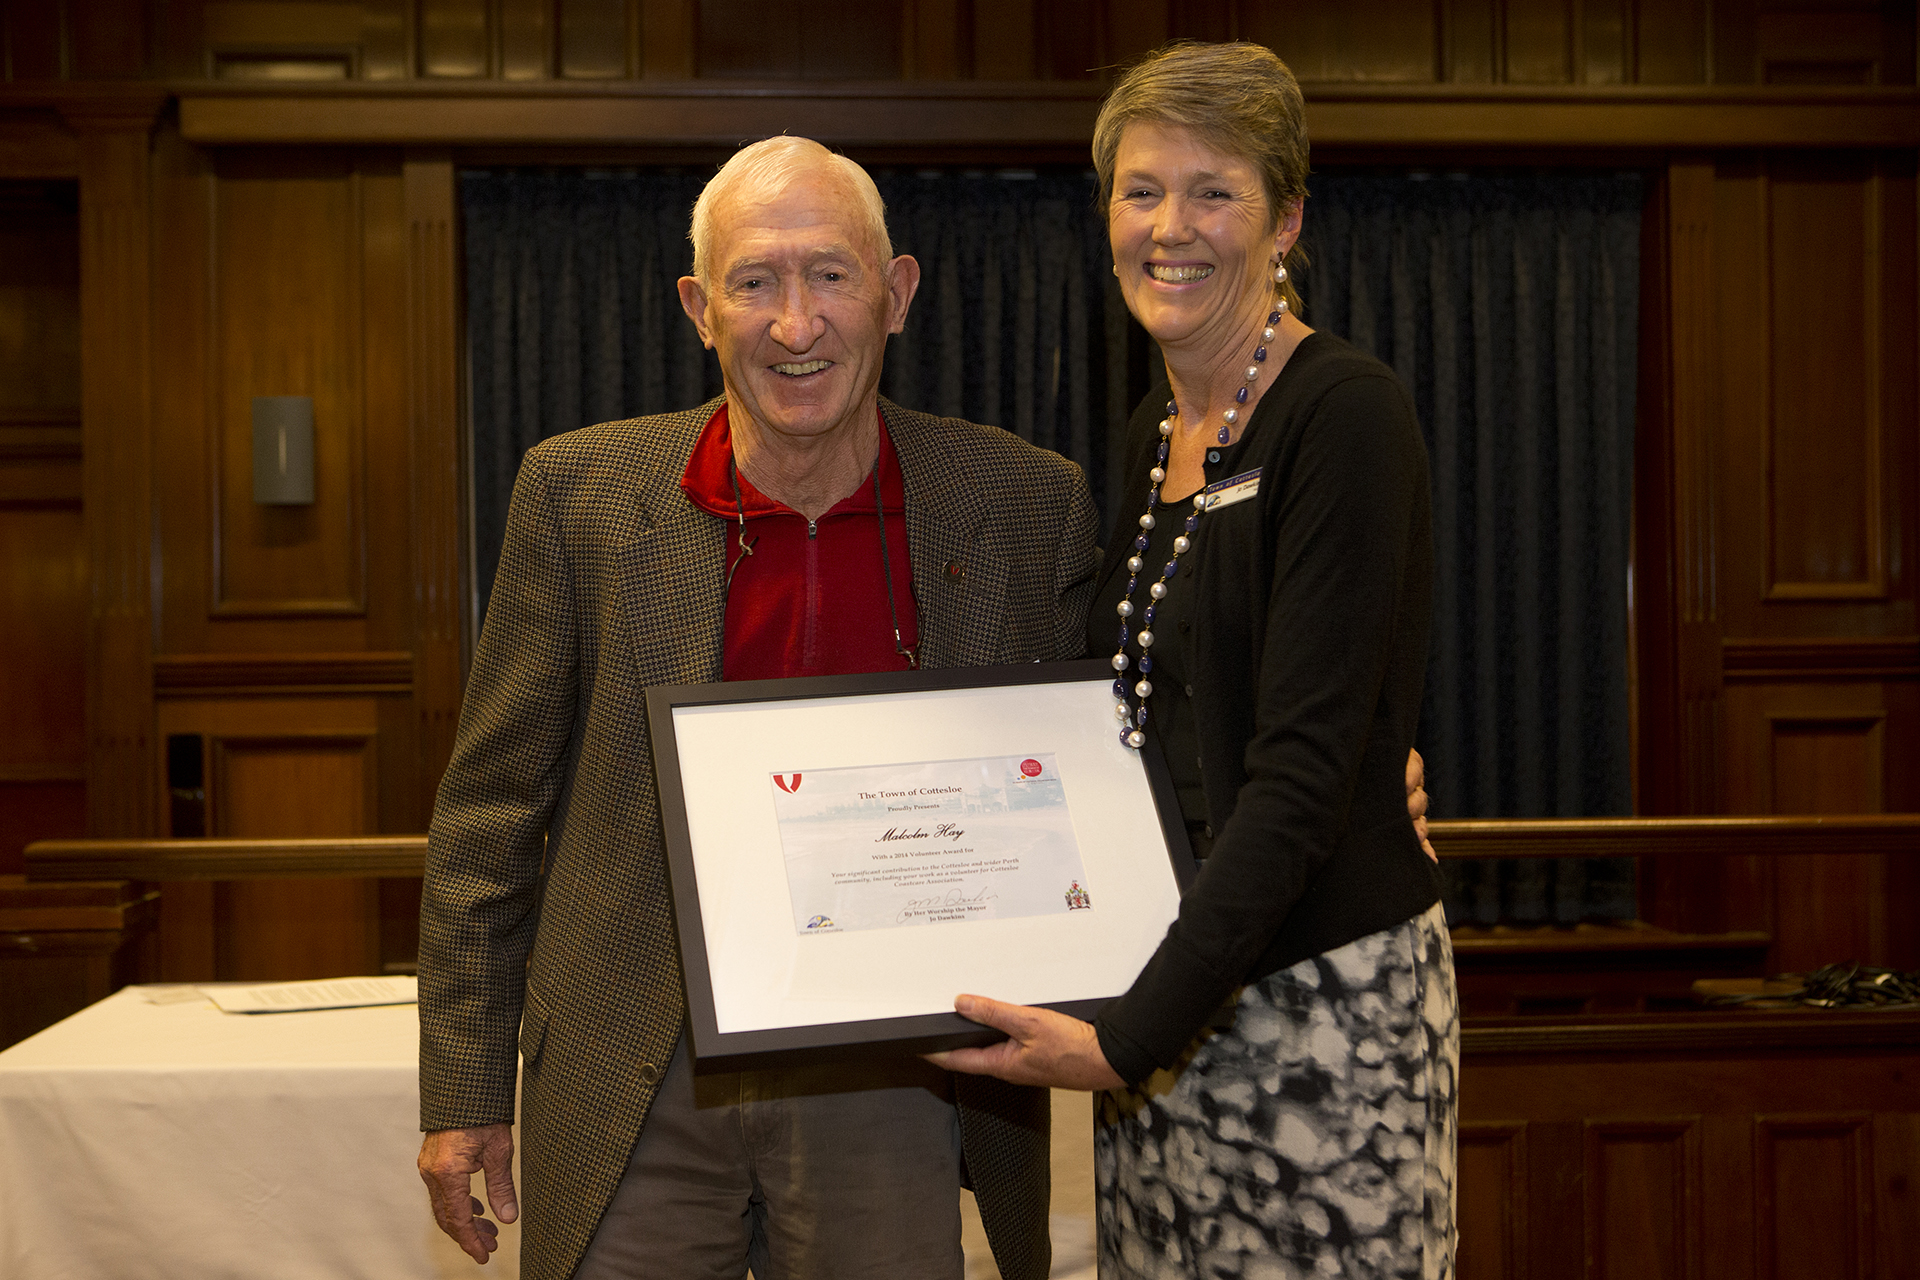 Malcolm receiving the Award from Town of Cottesloe Mayor, Jo Dawkins